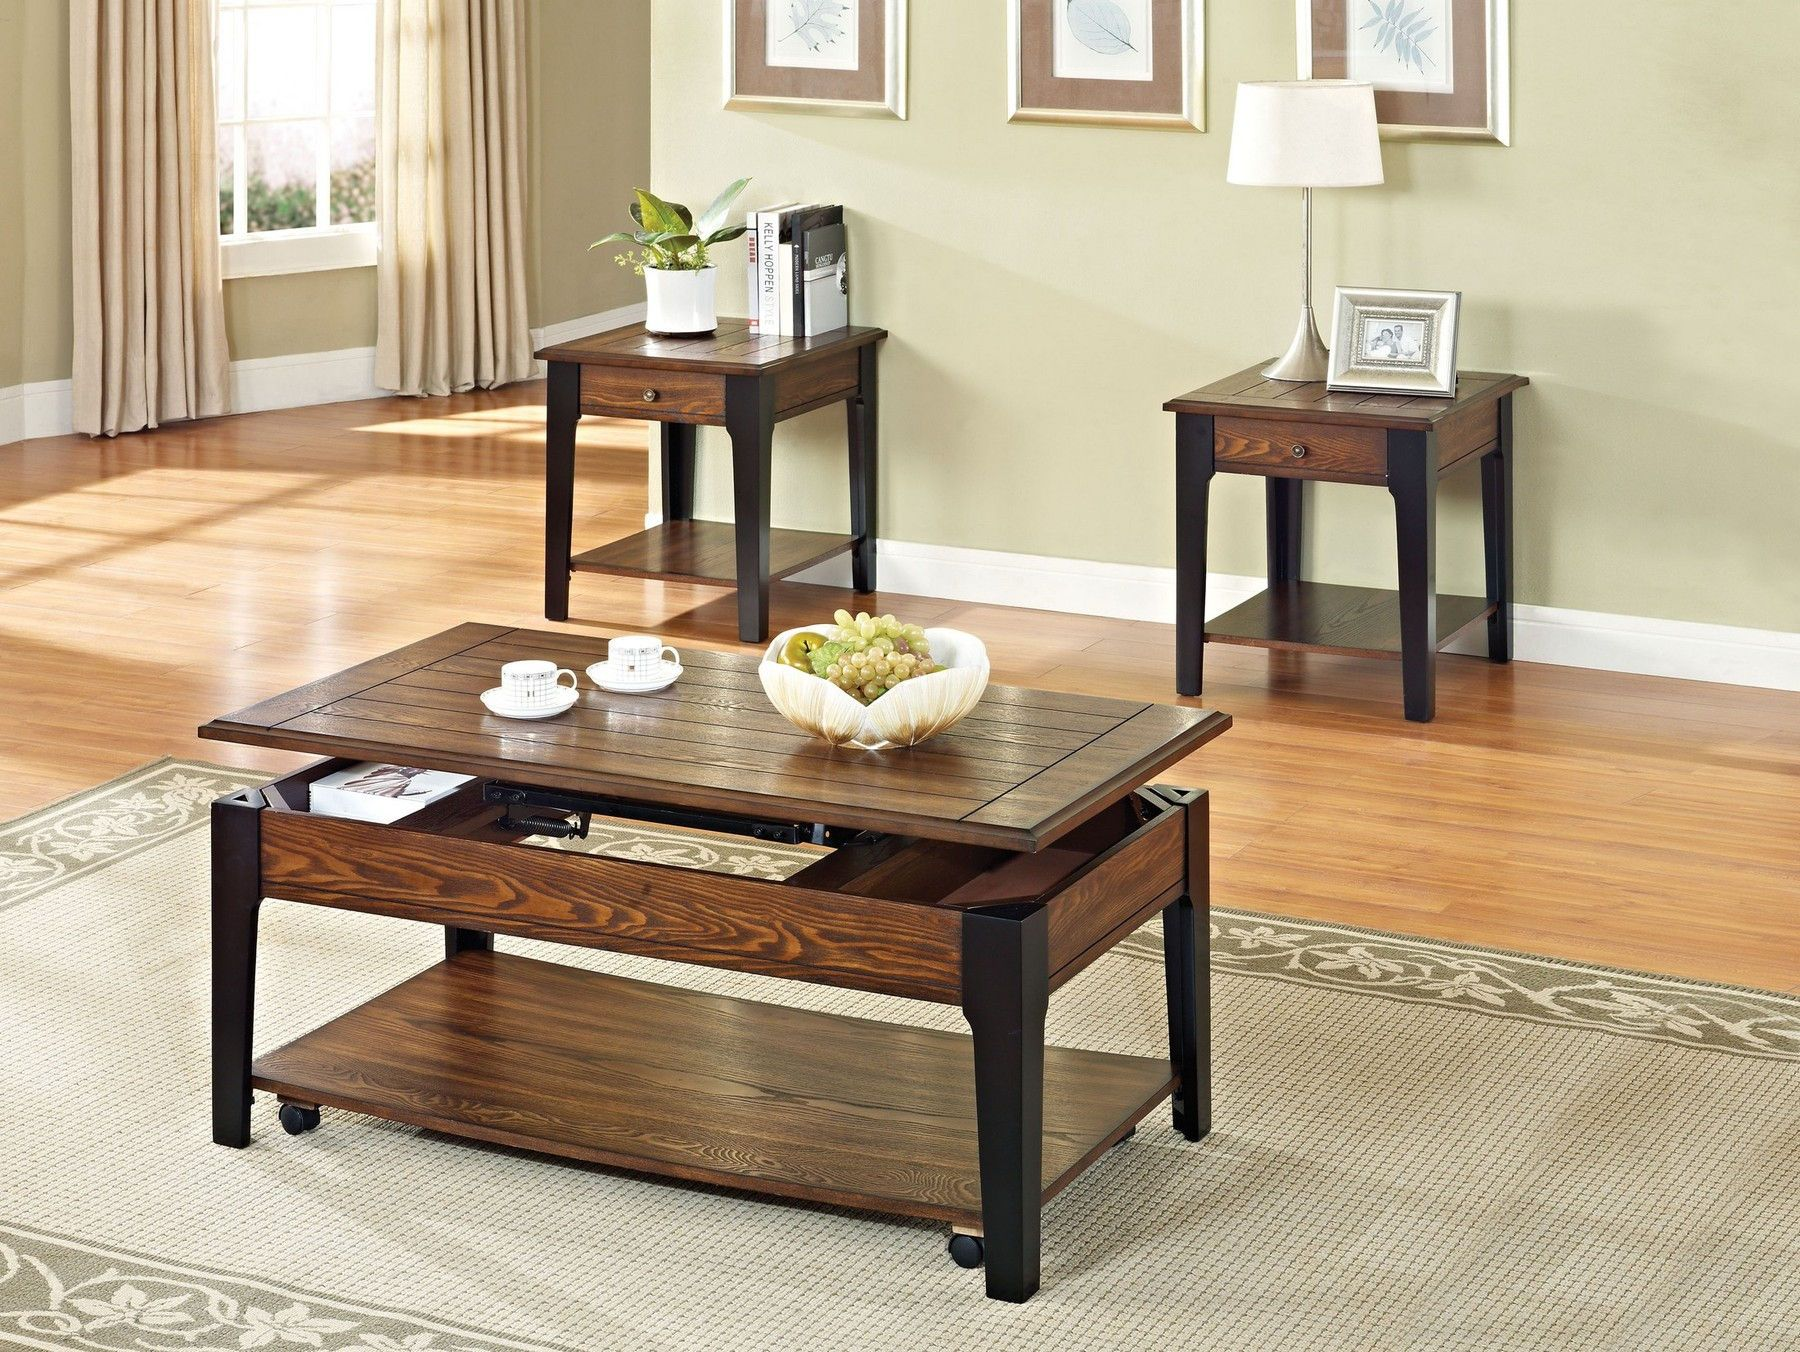 Magus Coffee Table 80260 Acme Corporation Coffee Tables In 2021 Coffee Table Stylish Coffee Table Living Room Table Sets [ 1352 x 1800 Pixel ]